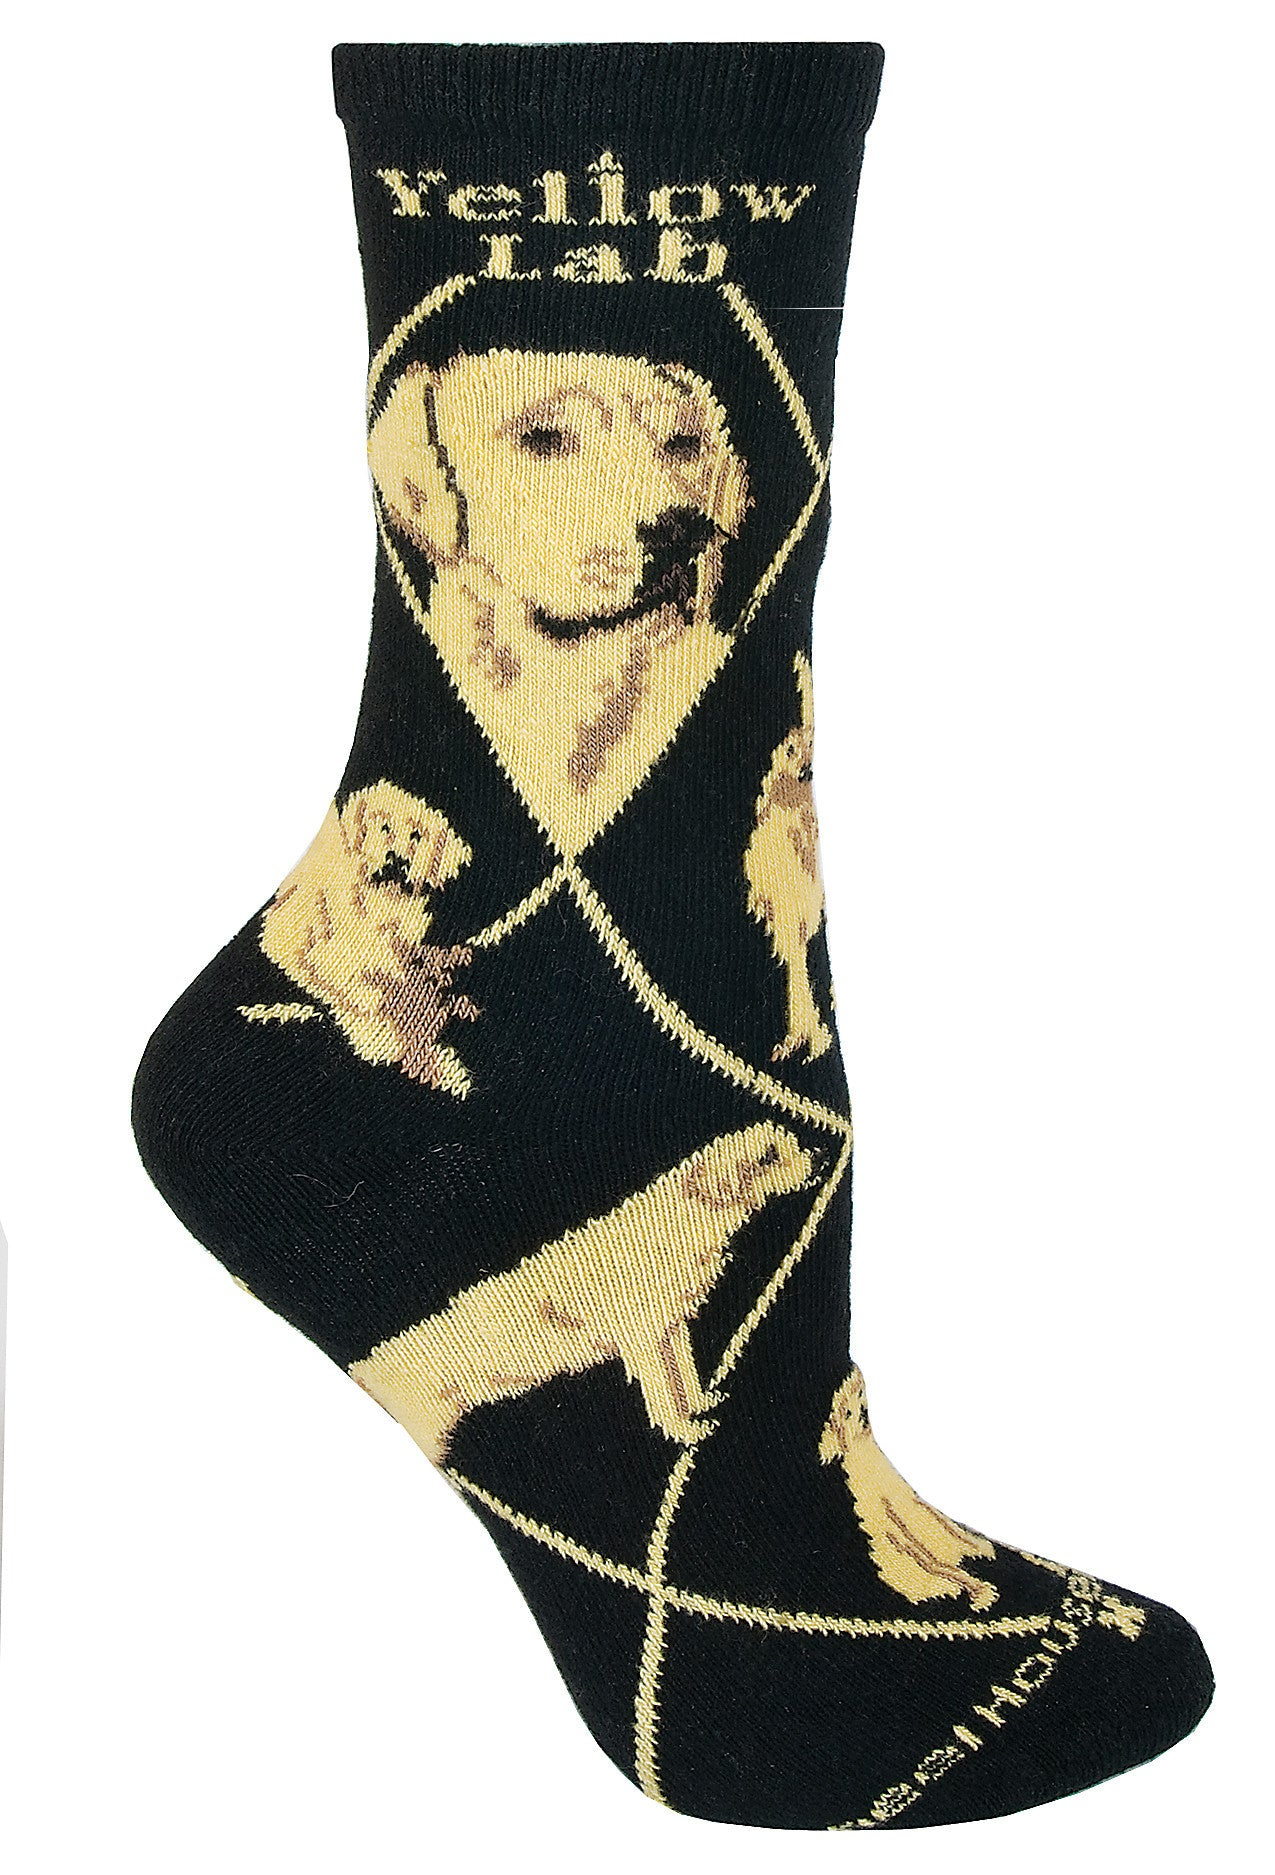 Yellow Labrador Retriever on Black Crew Socks